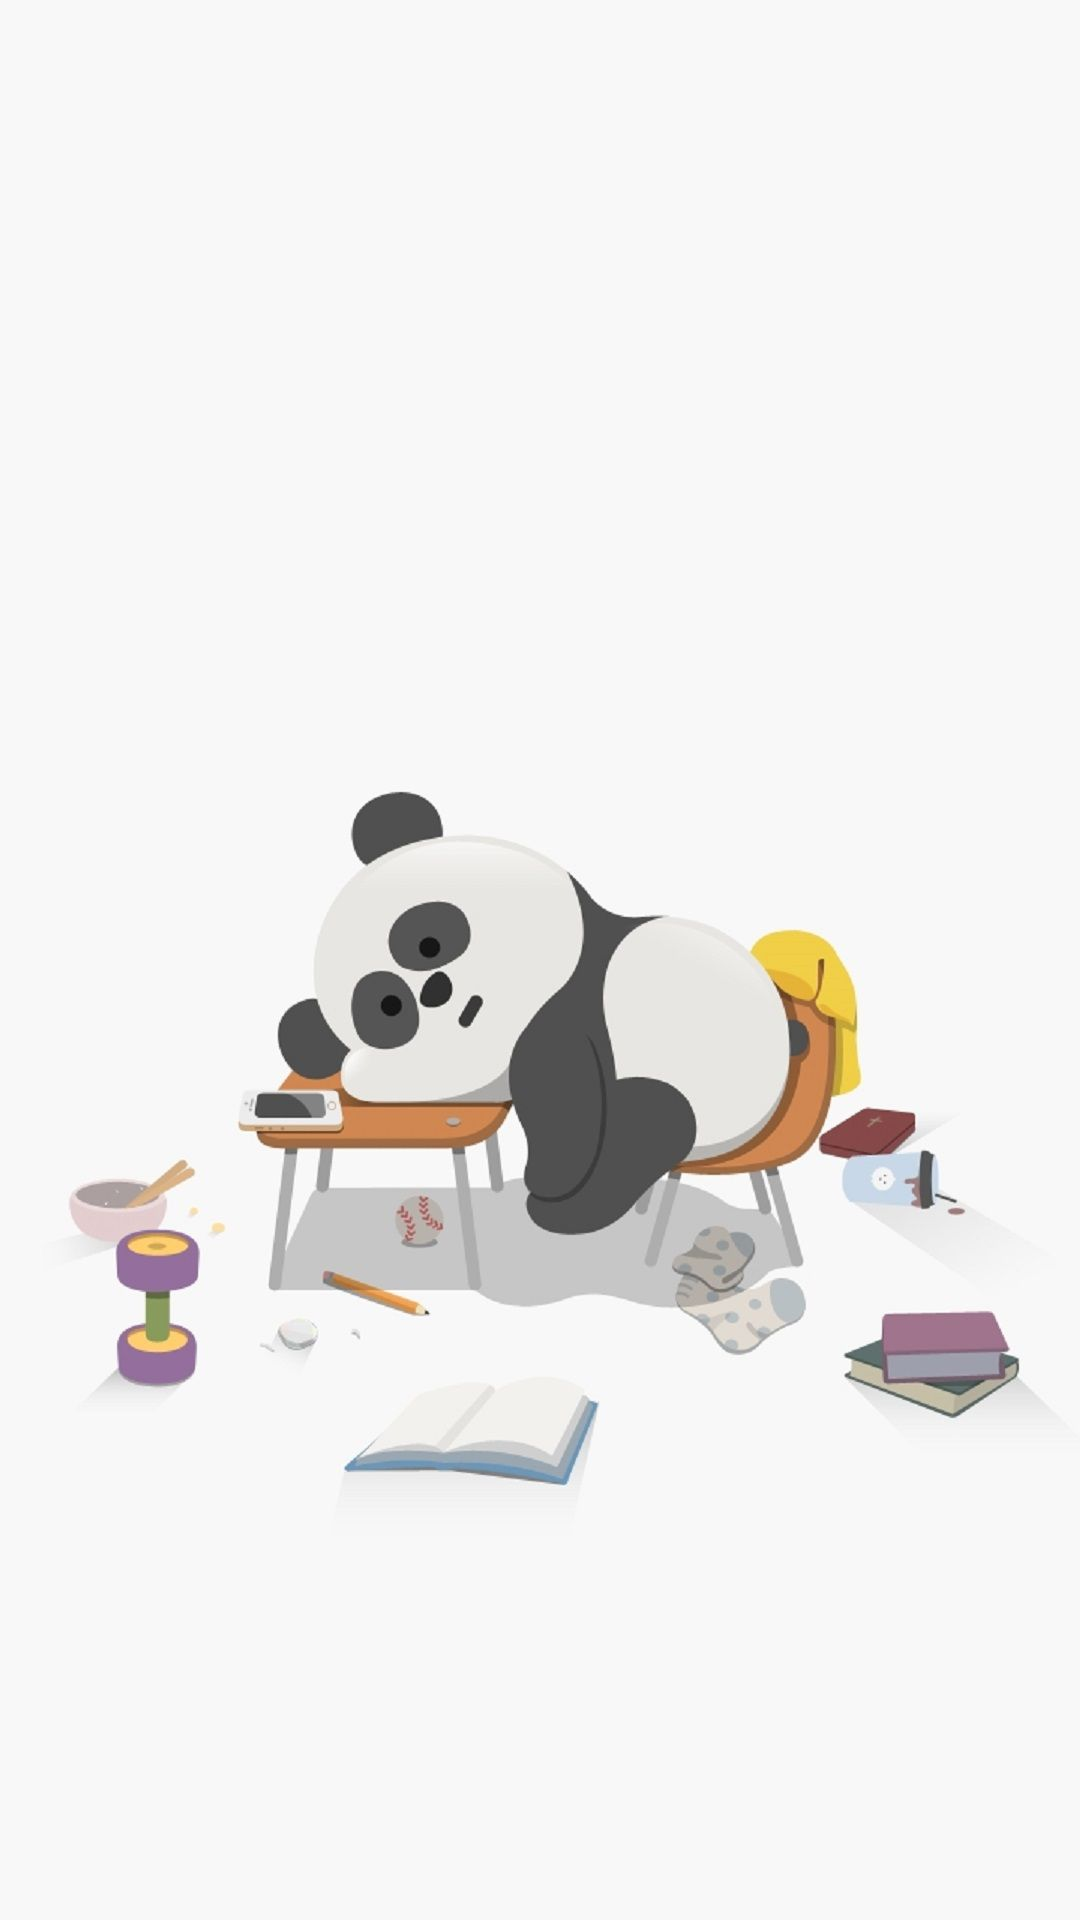 Sleepy Panda Cute Panda Wallpaper Cute Cartoon Wallpapers Panda Wallpapers